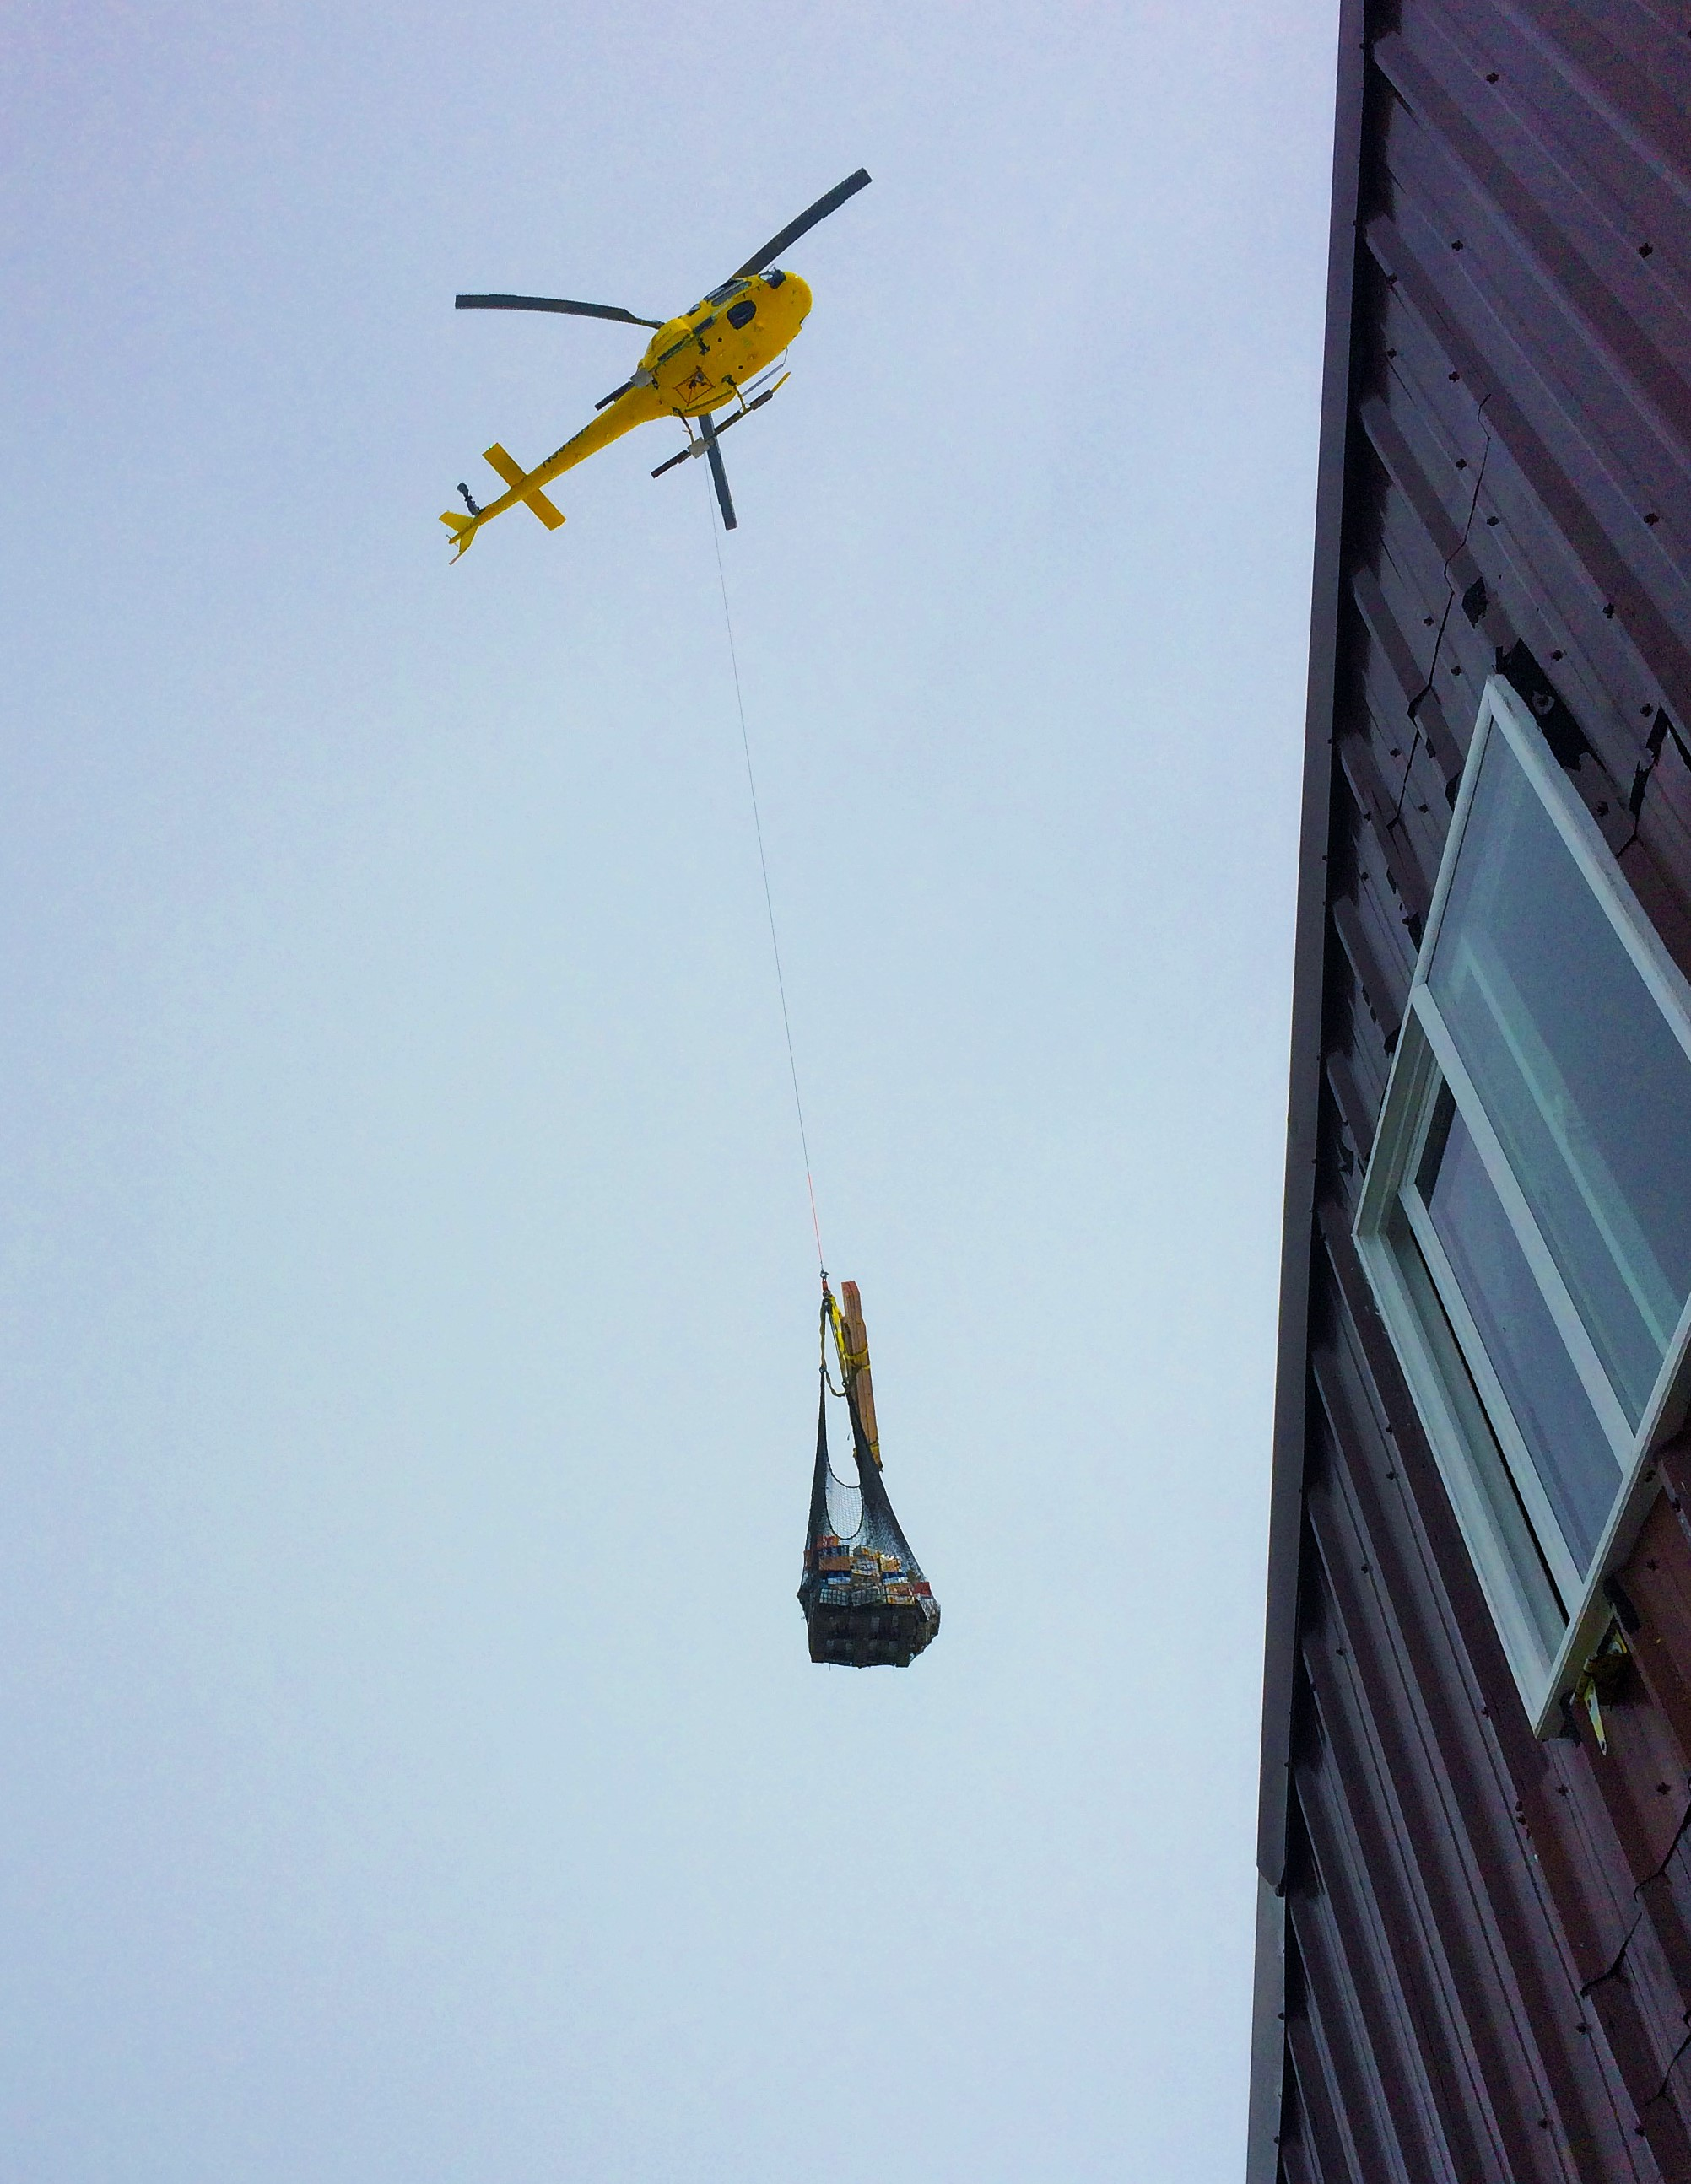 A helicopter bringing in a fresh load of food to help the cooks with their improvisation.